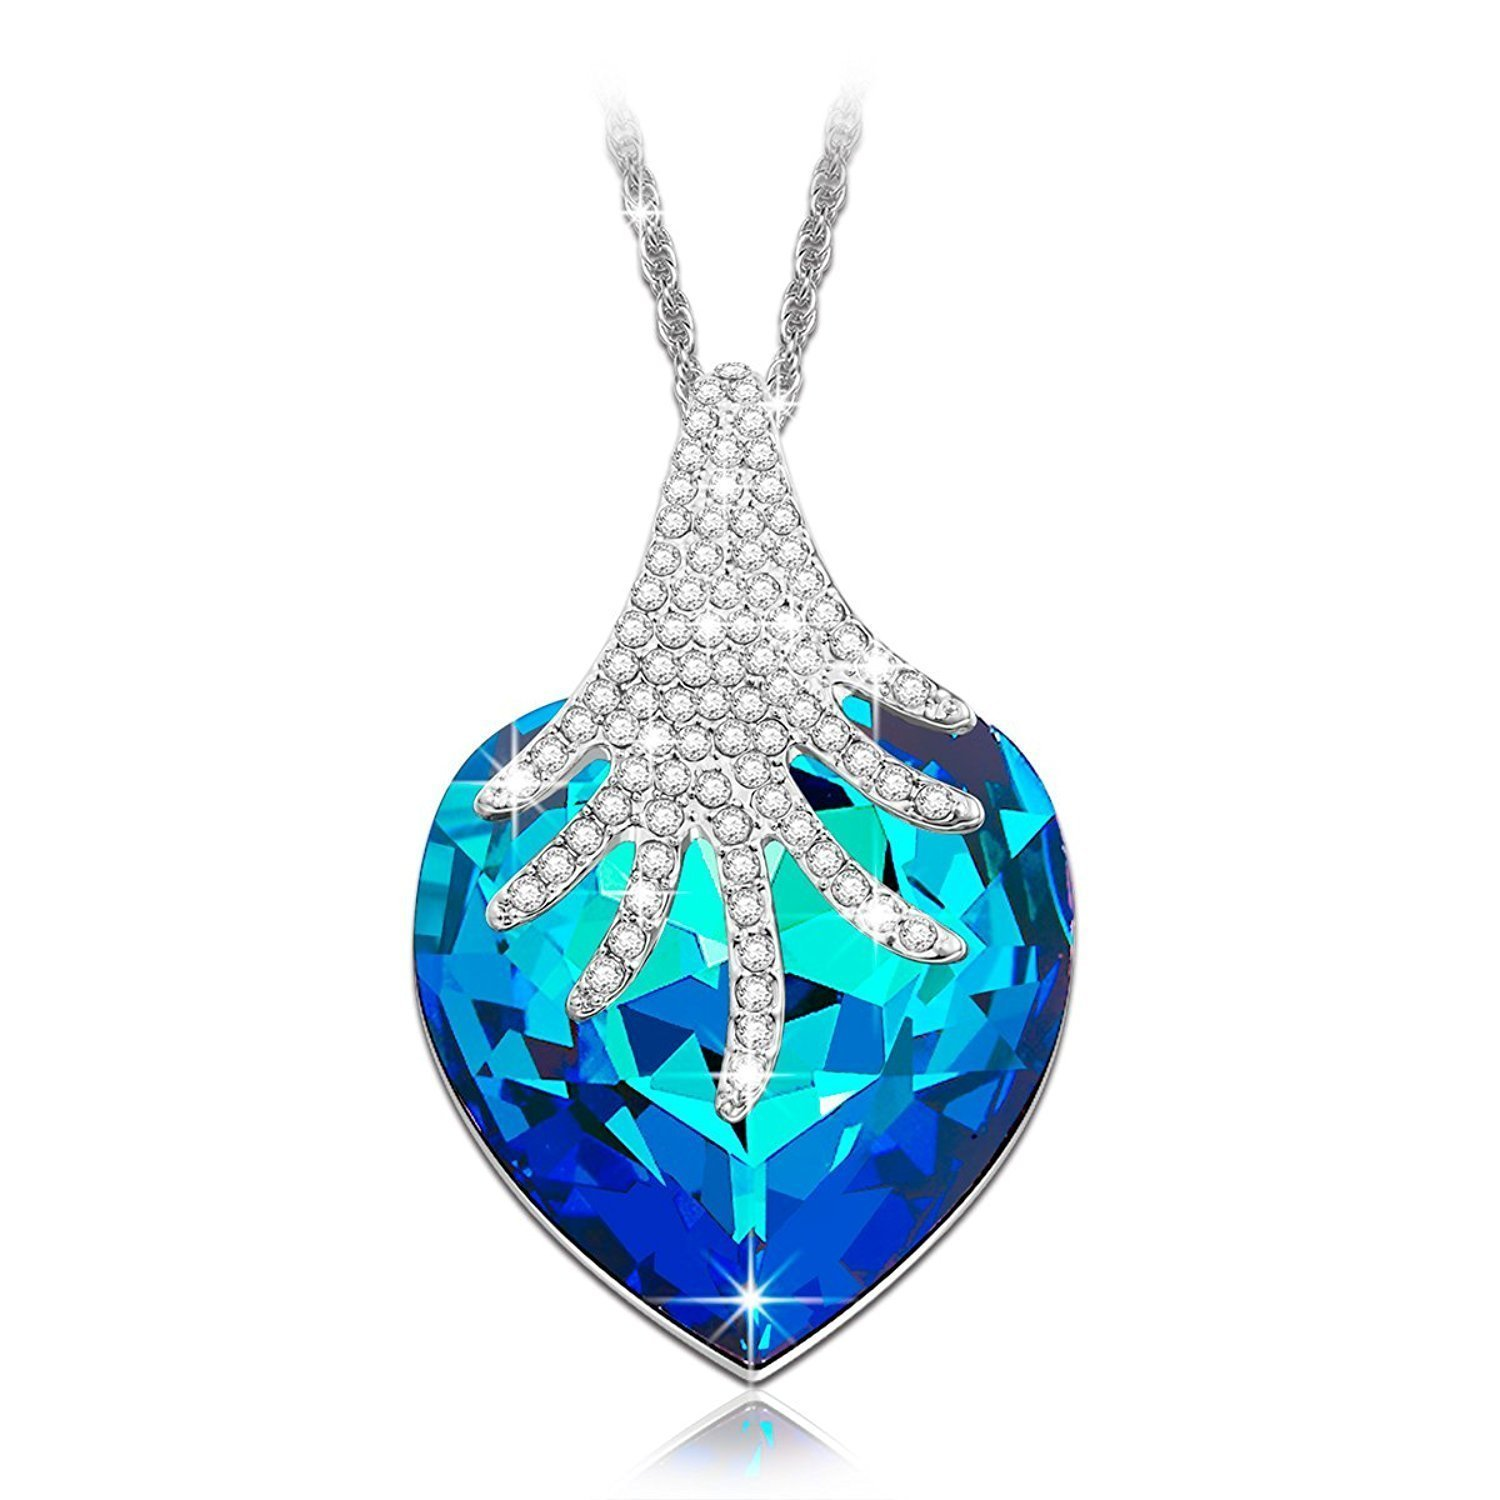 "Bella Gifts for Women Heart Of The Ocean Necklace Fashion Jewelry ""The Wishing T"